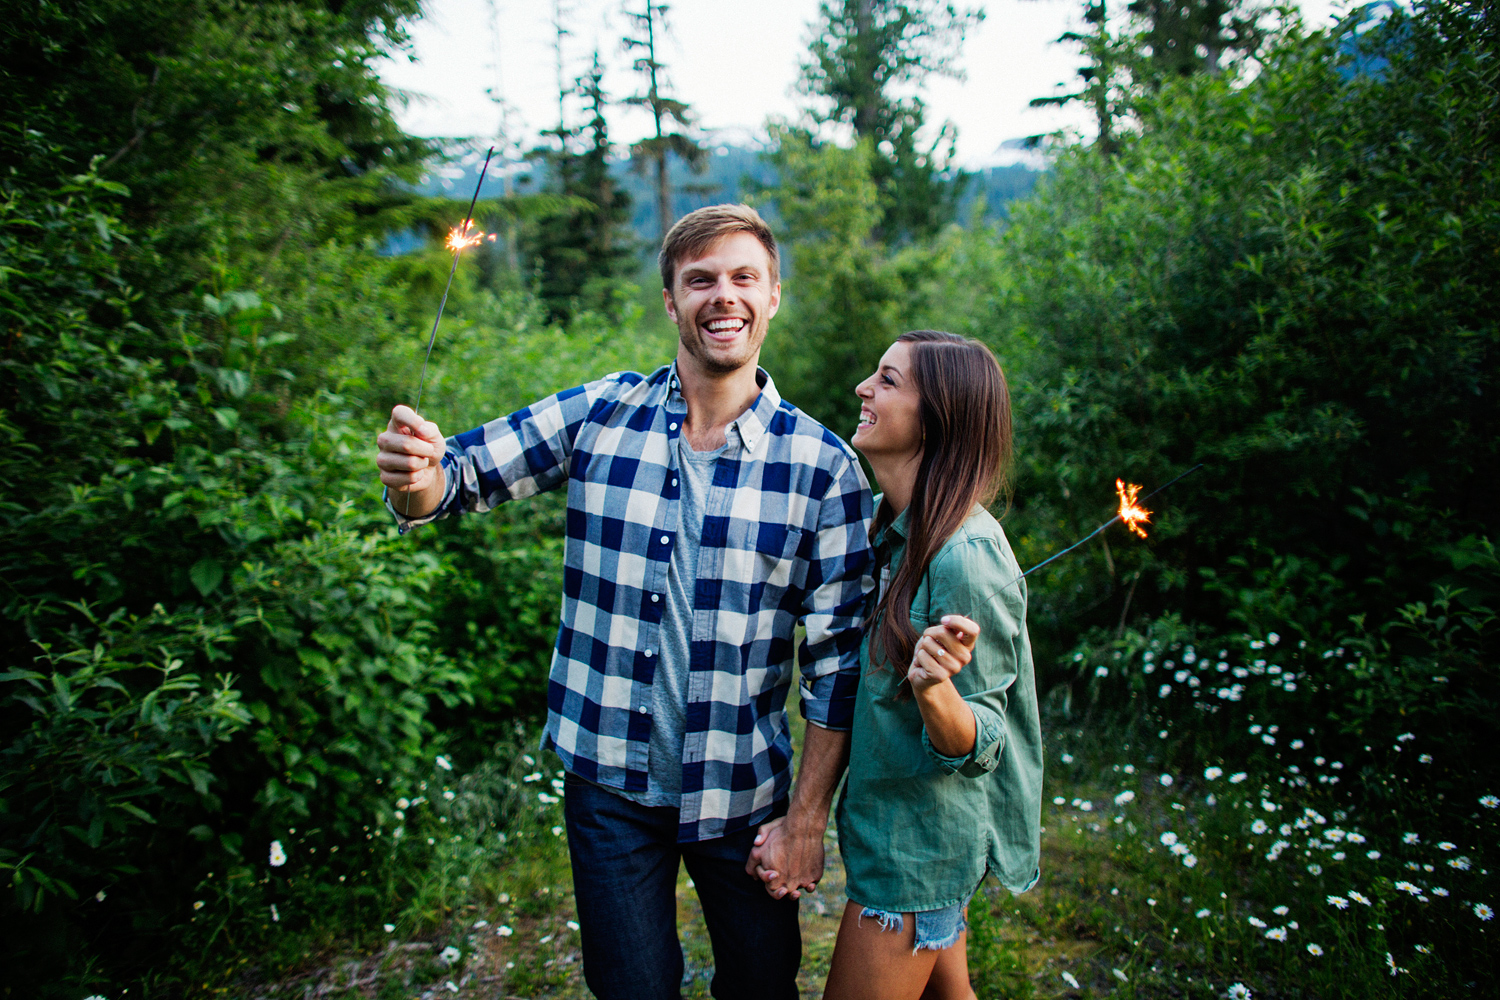 ryan-flynn-seattle-pnw-mountain-engagement-film-0042.JPG